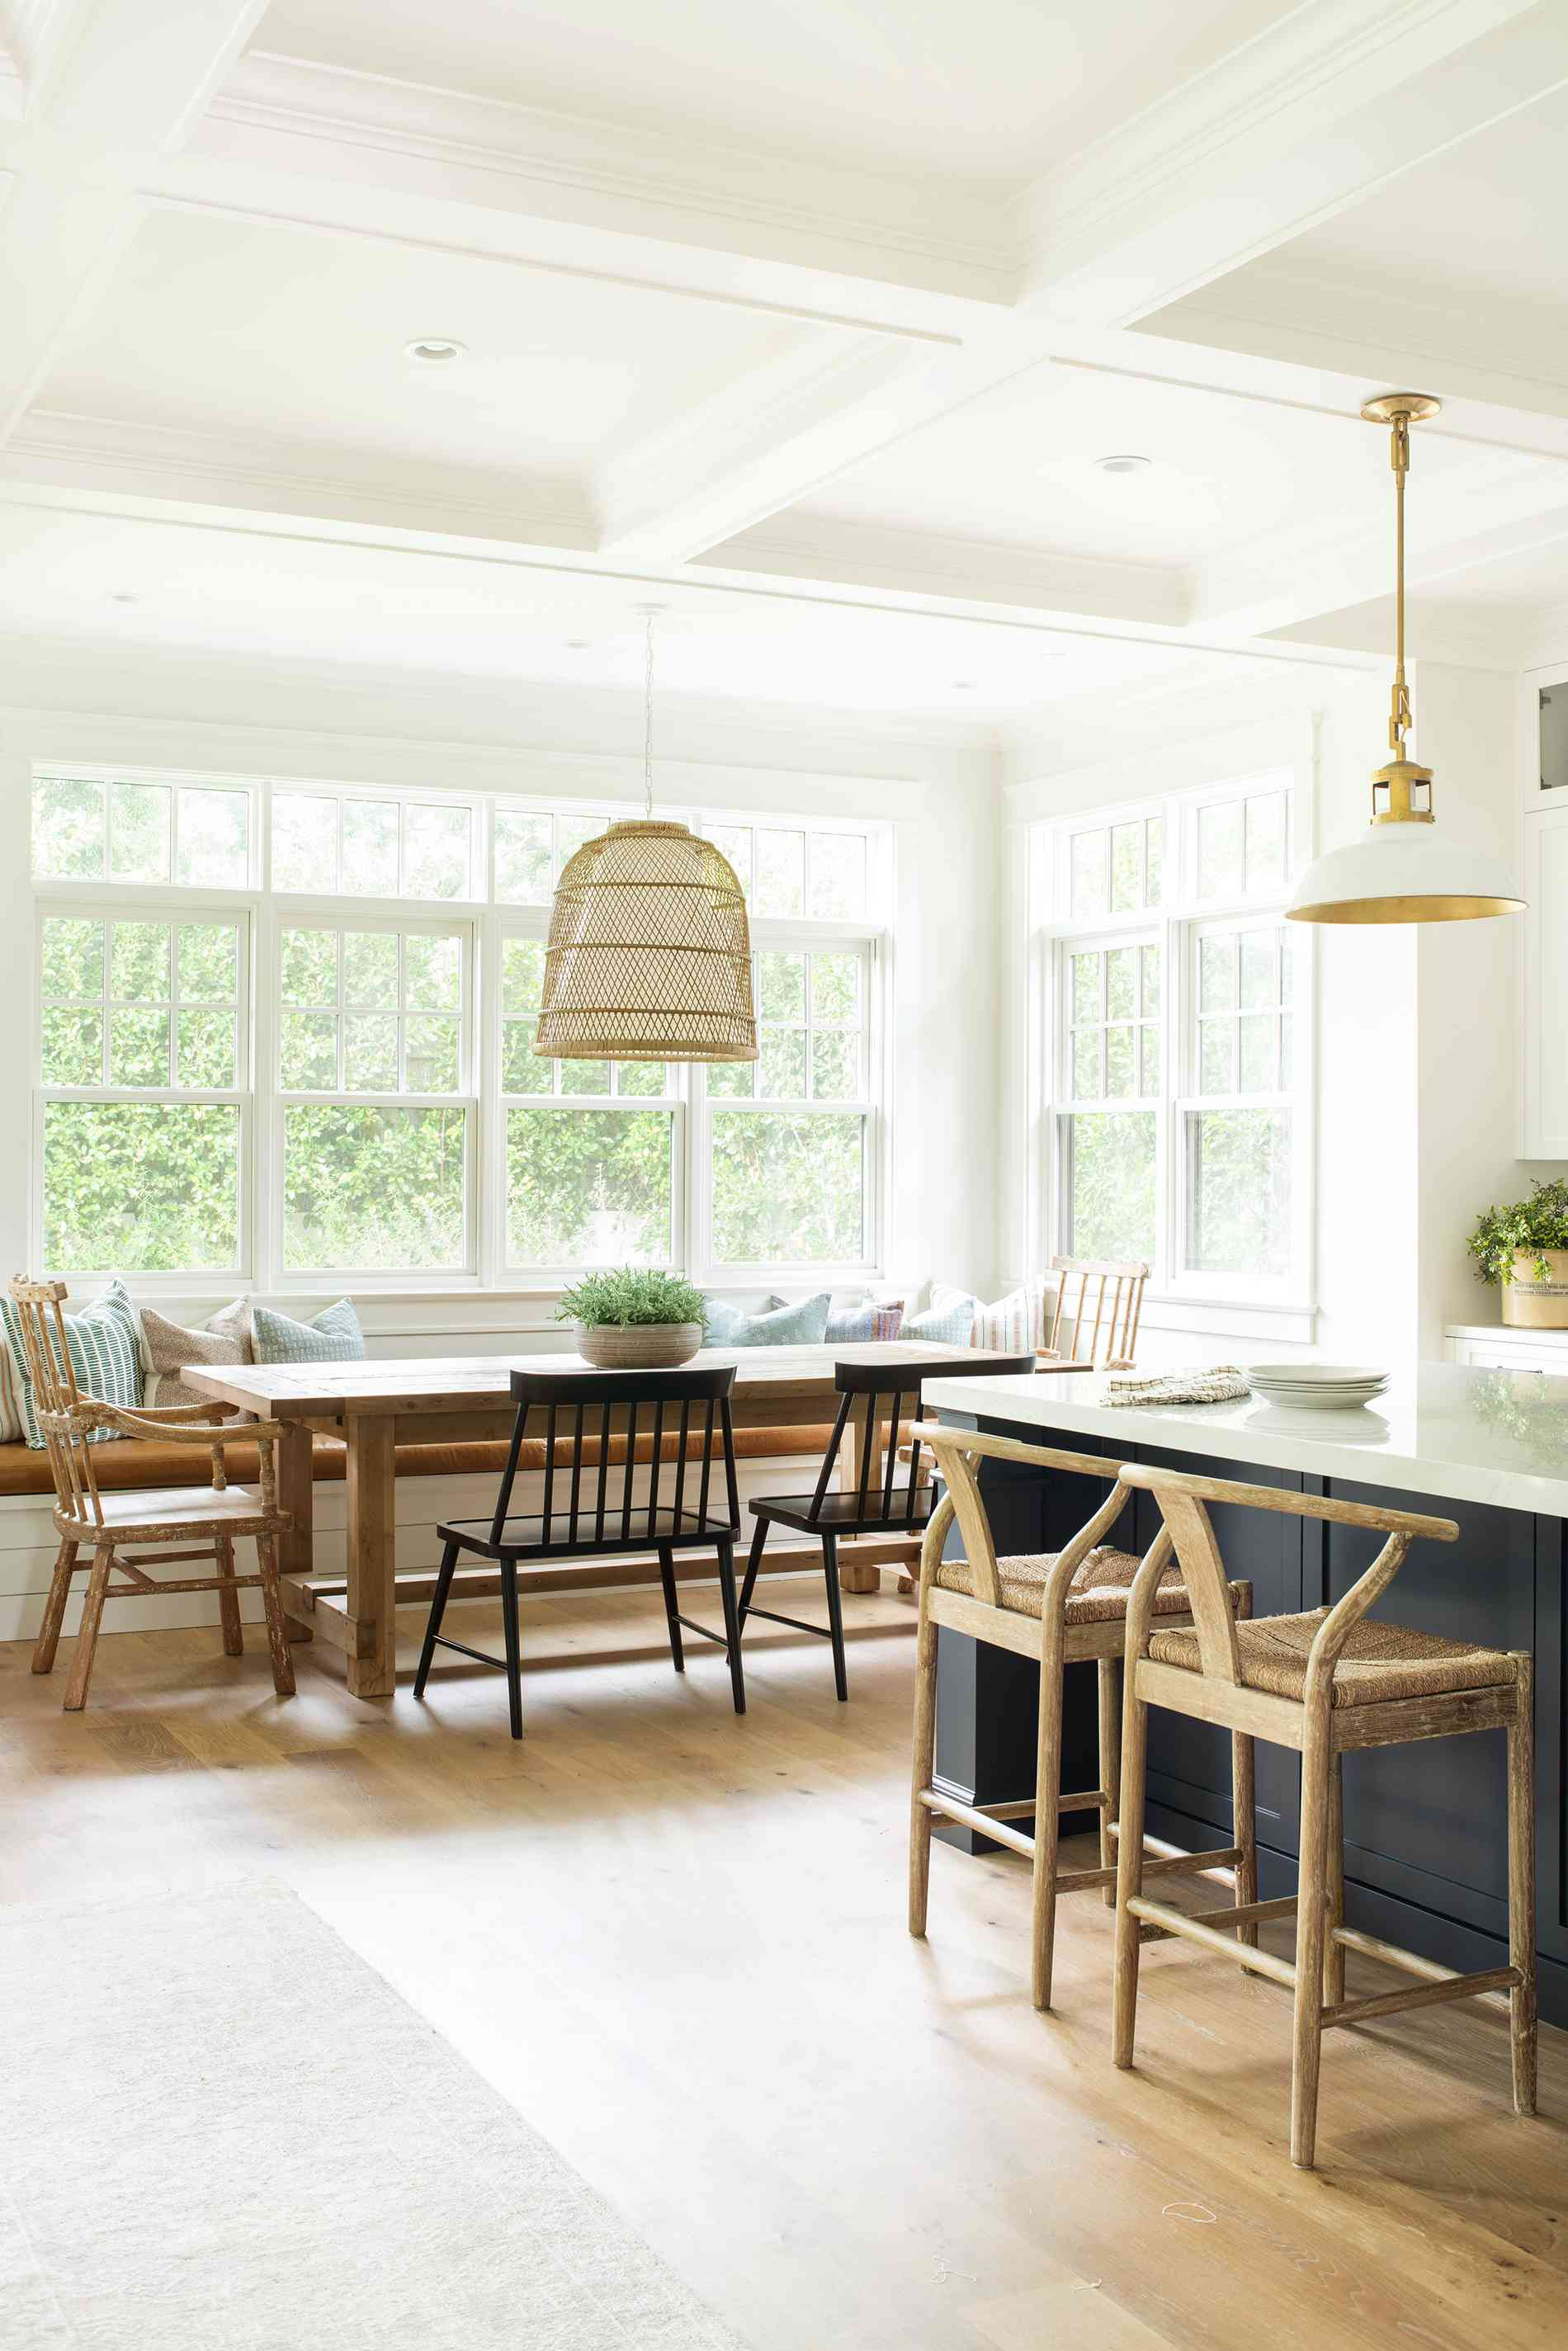 Bright kitchen view of island and table.